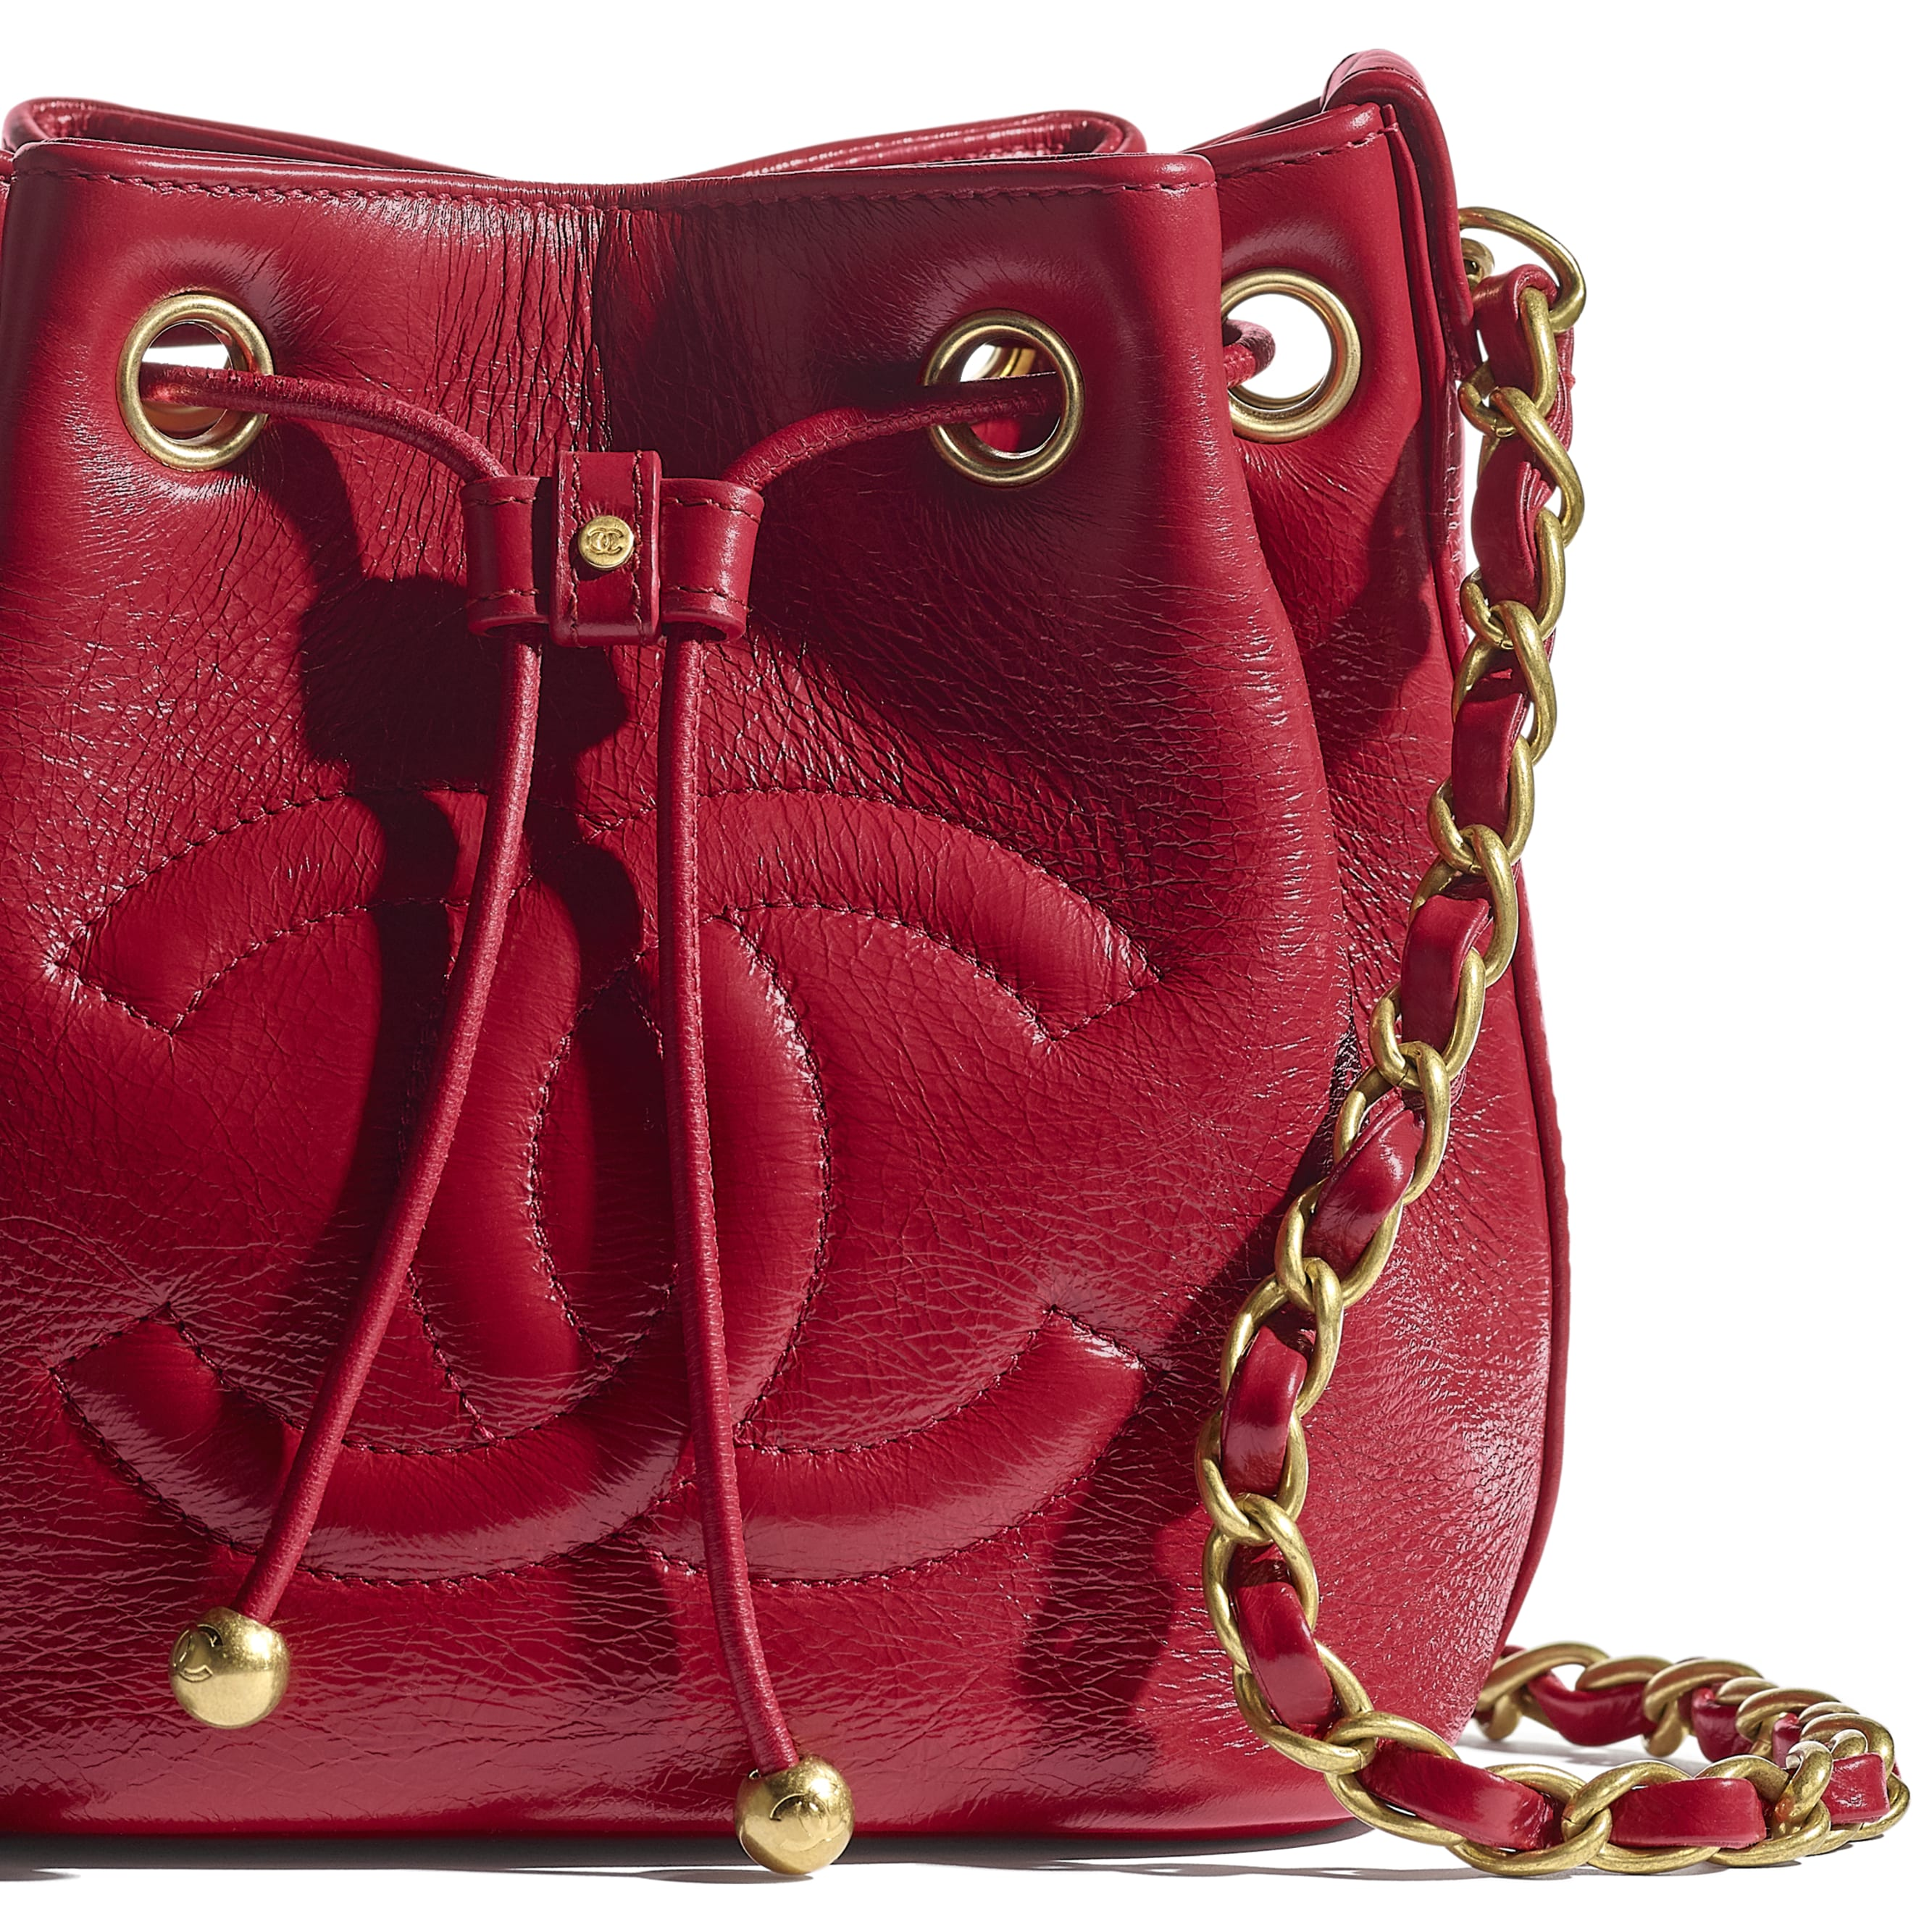 Drawstring Bag - Red - Shiny Aged Calfskin & Gold-Tone Metal - CHANEL - Extra view - see standard sized version